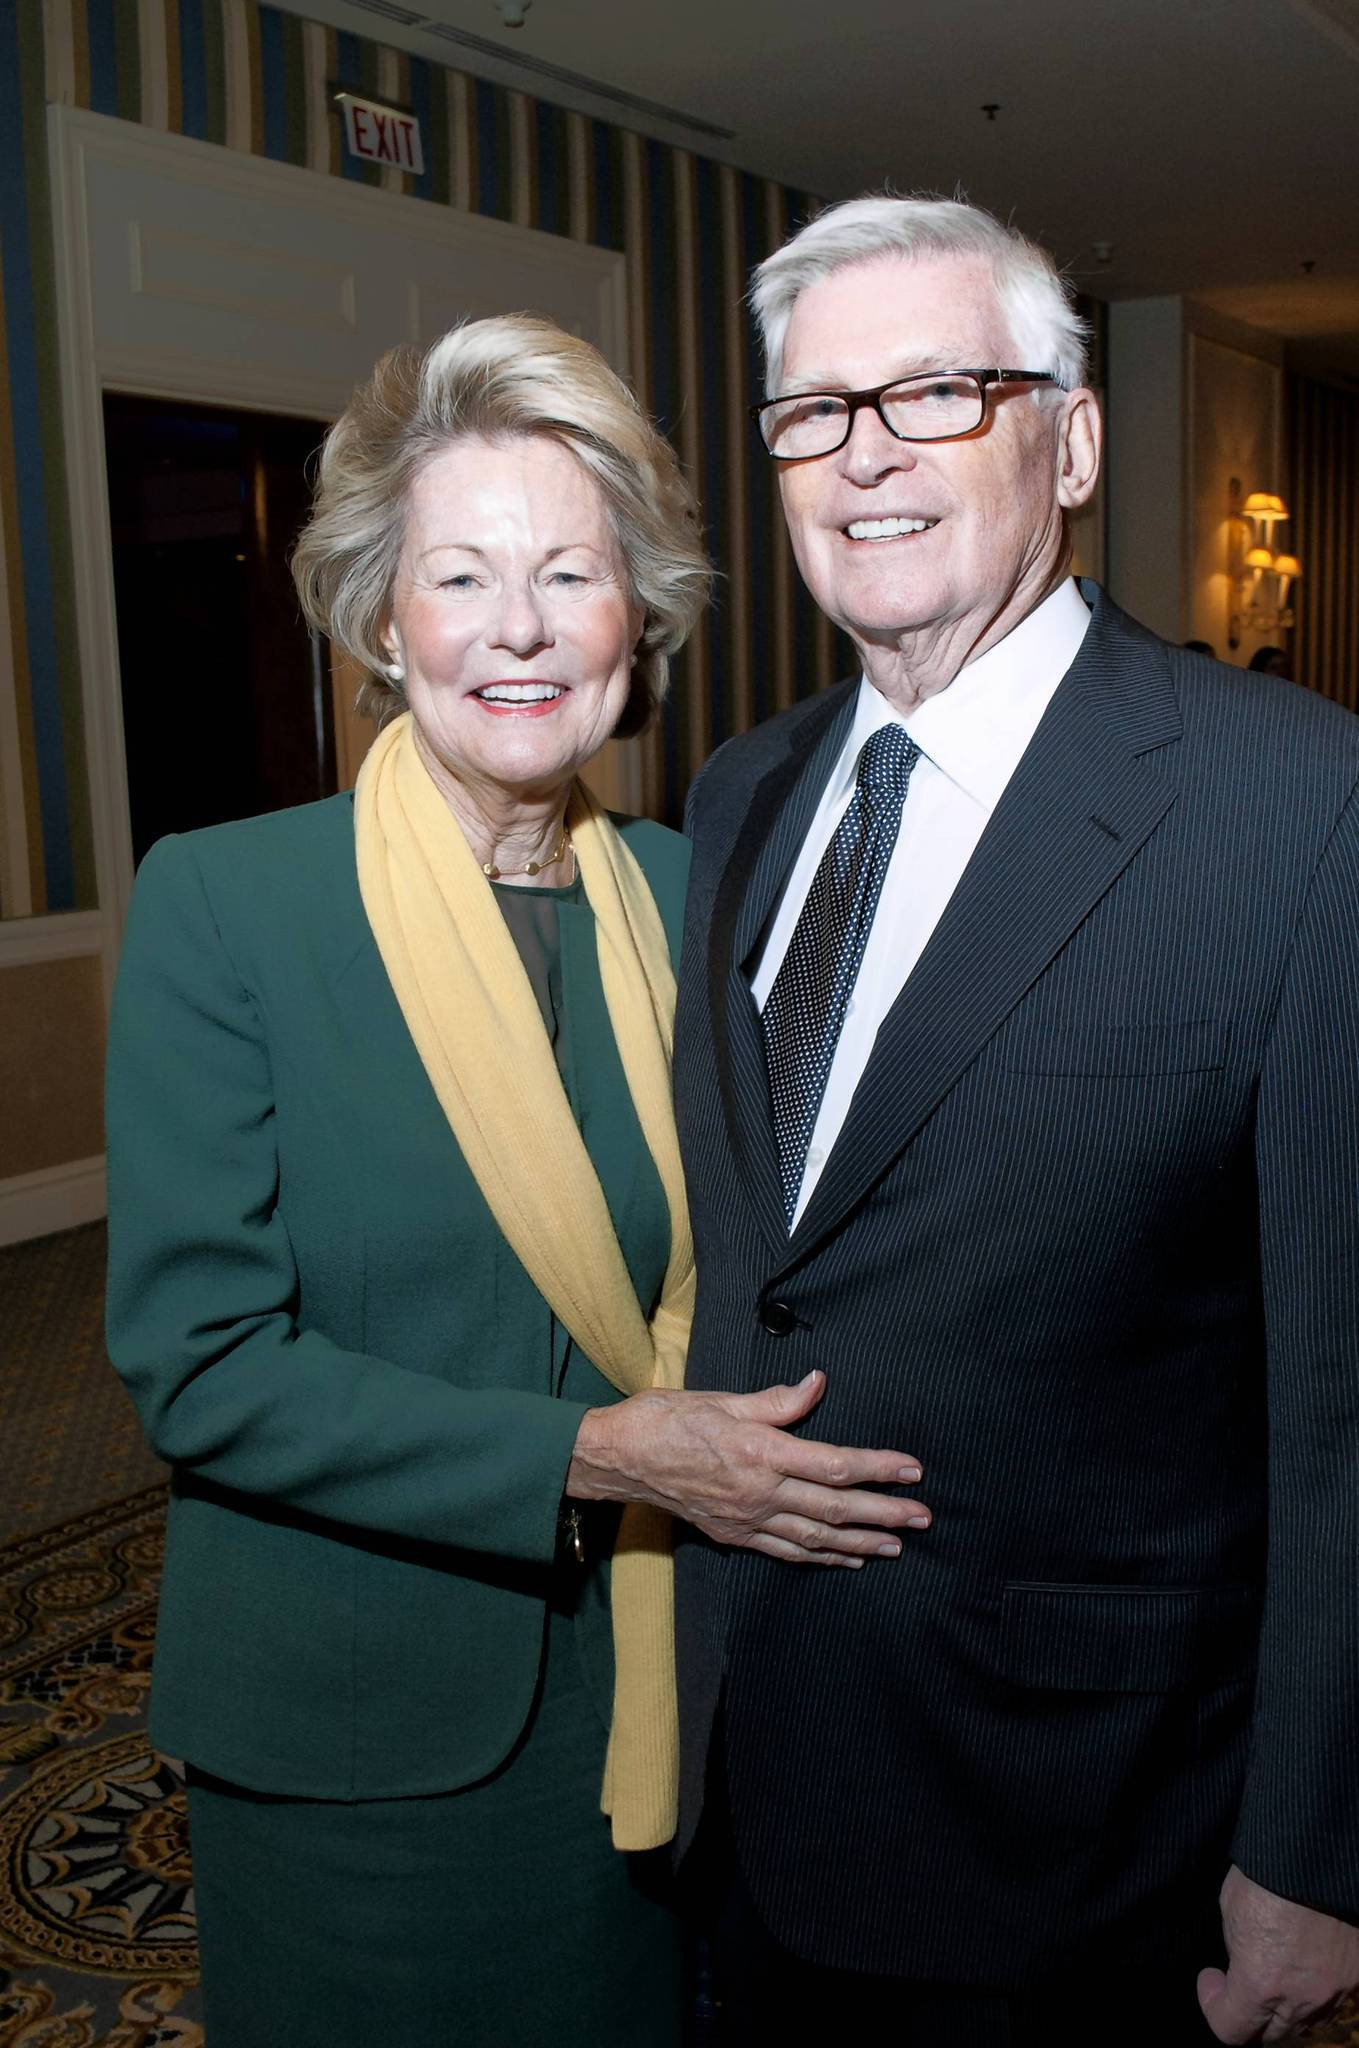 Honoree Shirley Ryan with husband Pat Ryan at the Women in Leadership Awards Luncheon, Friday, February 22, 2013 at the Fairmont Hotel (200 N. Columbus) in Chicago, Illinois.